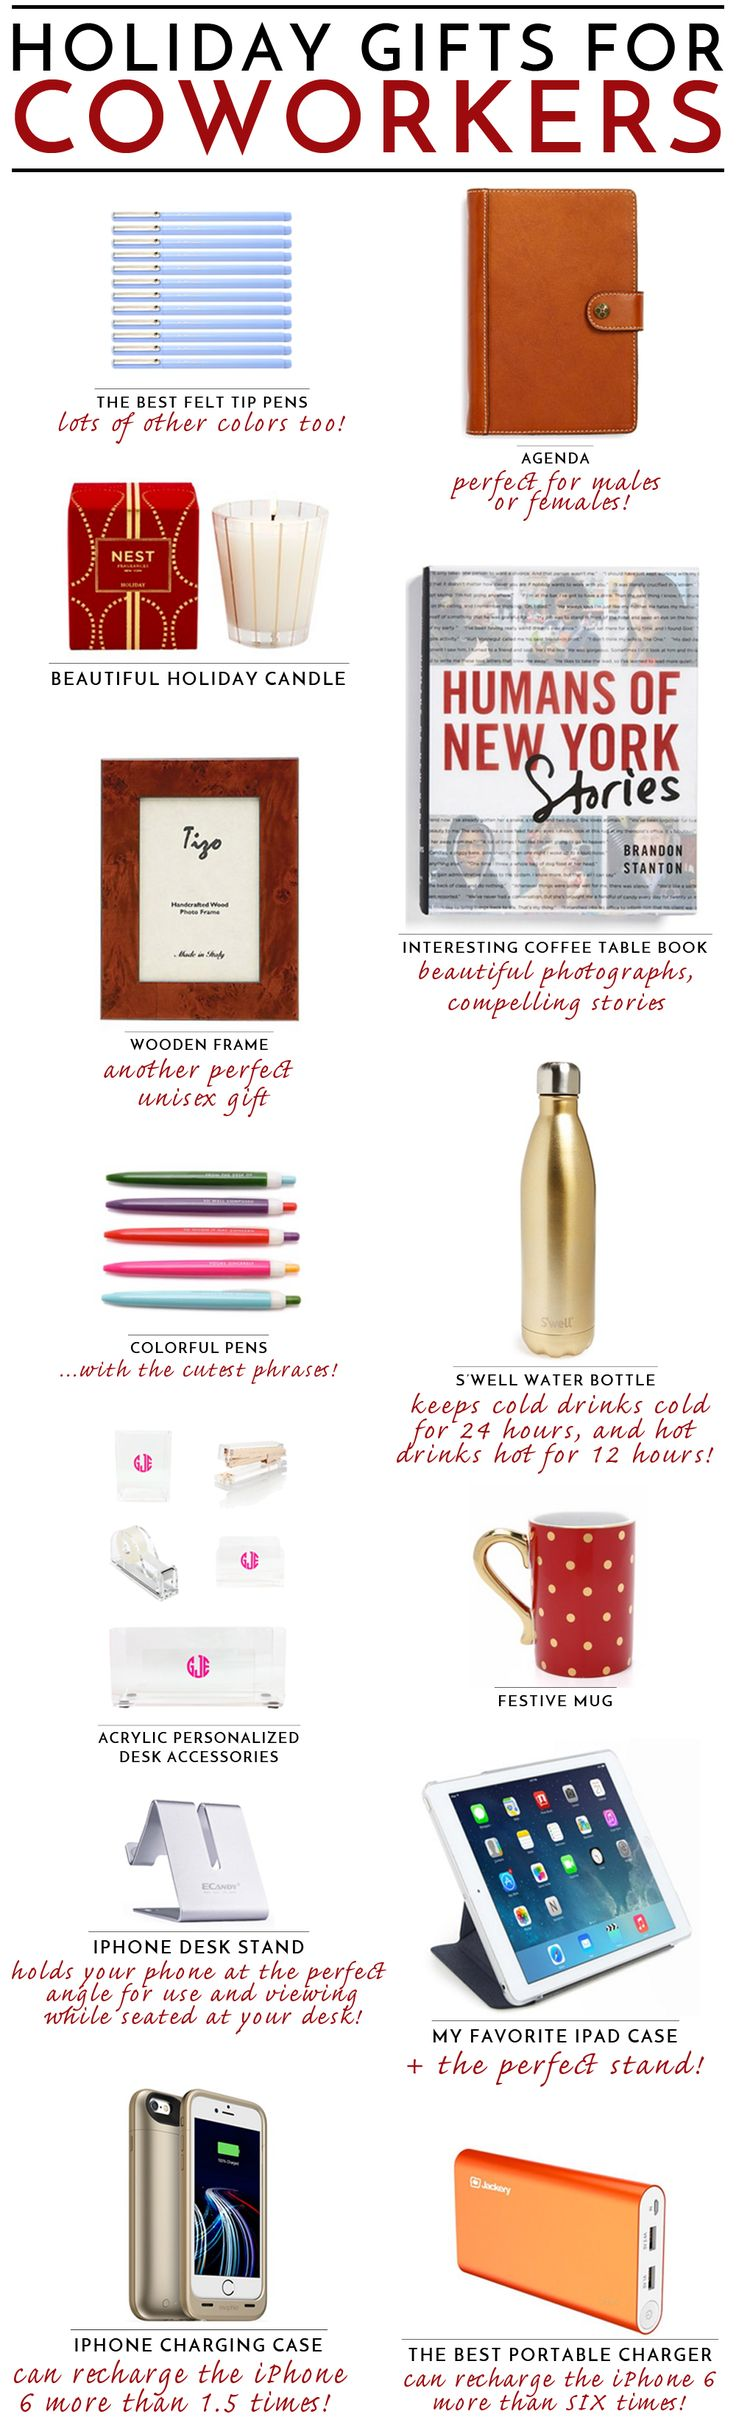 The best professional holiday gifts for coworkers // what to give colleagues this christmas and hanukkah!